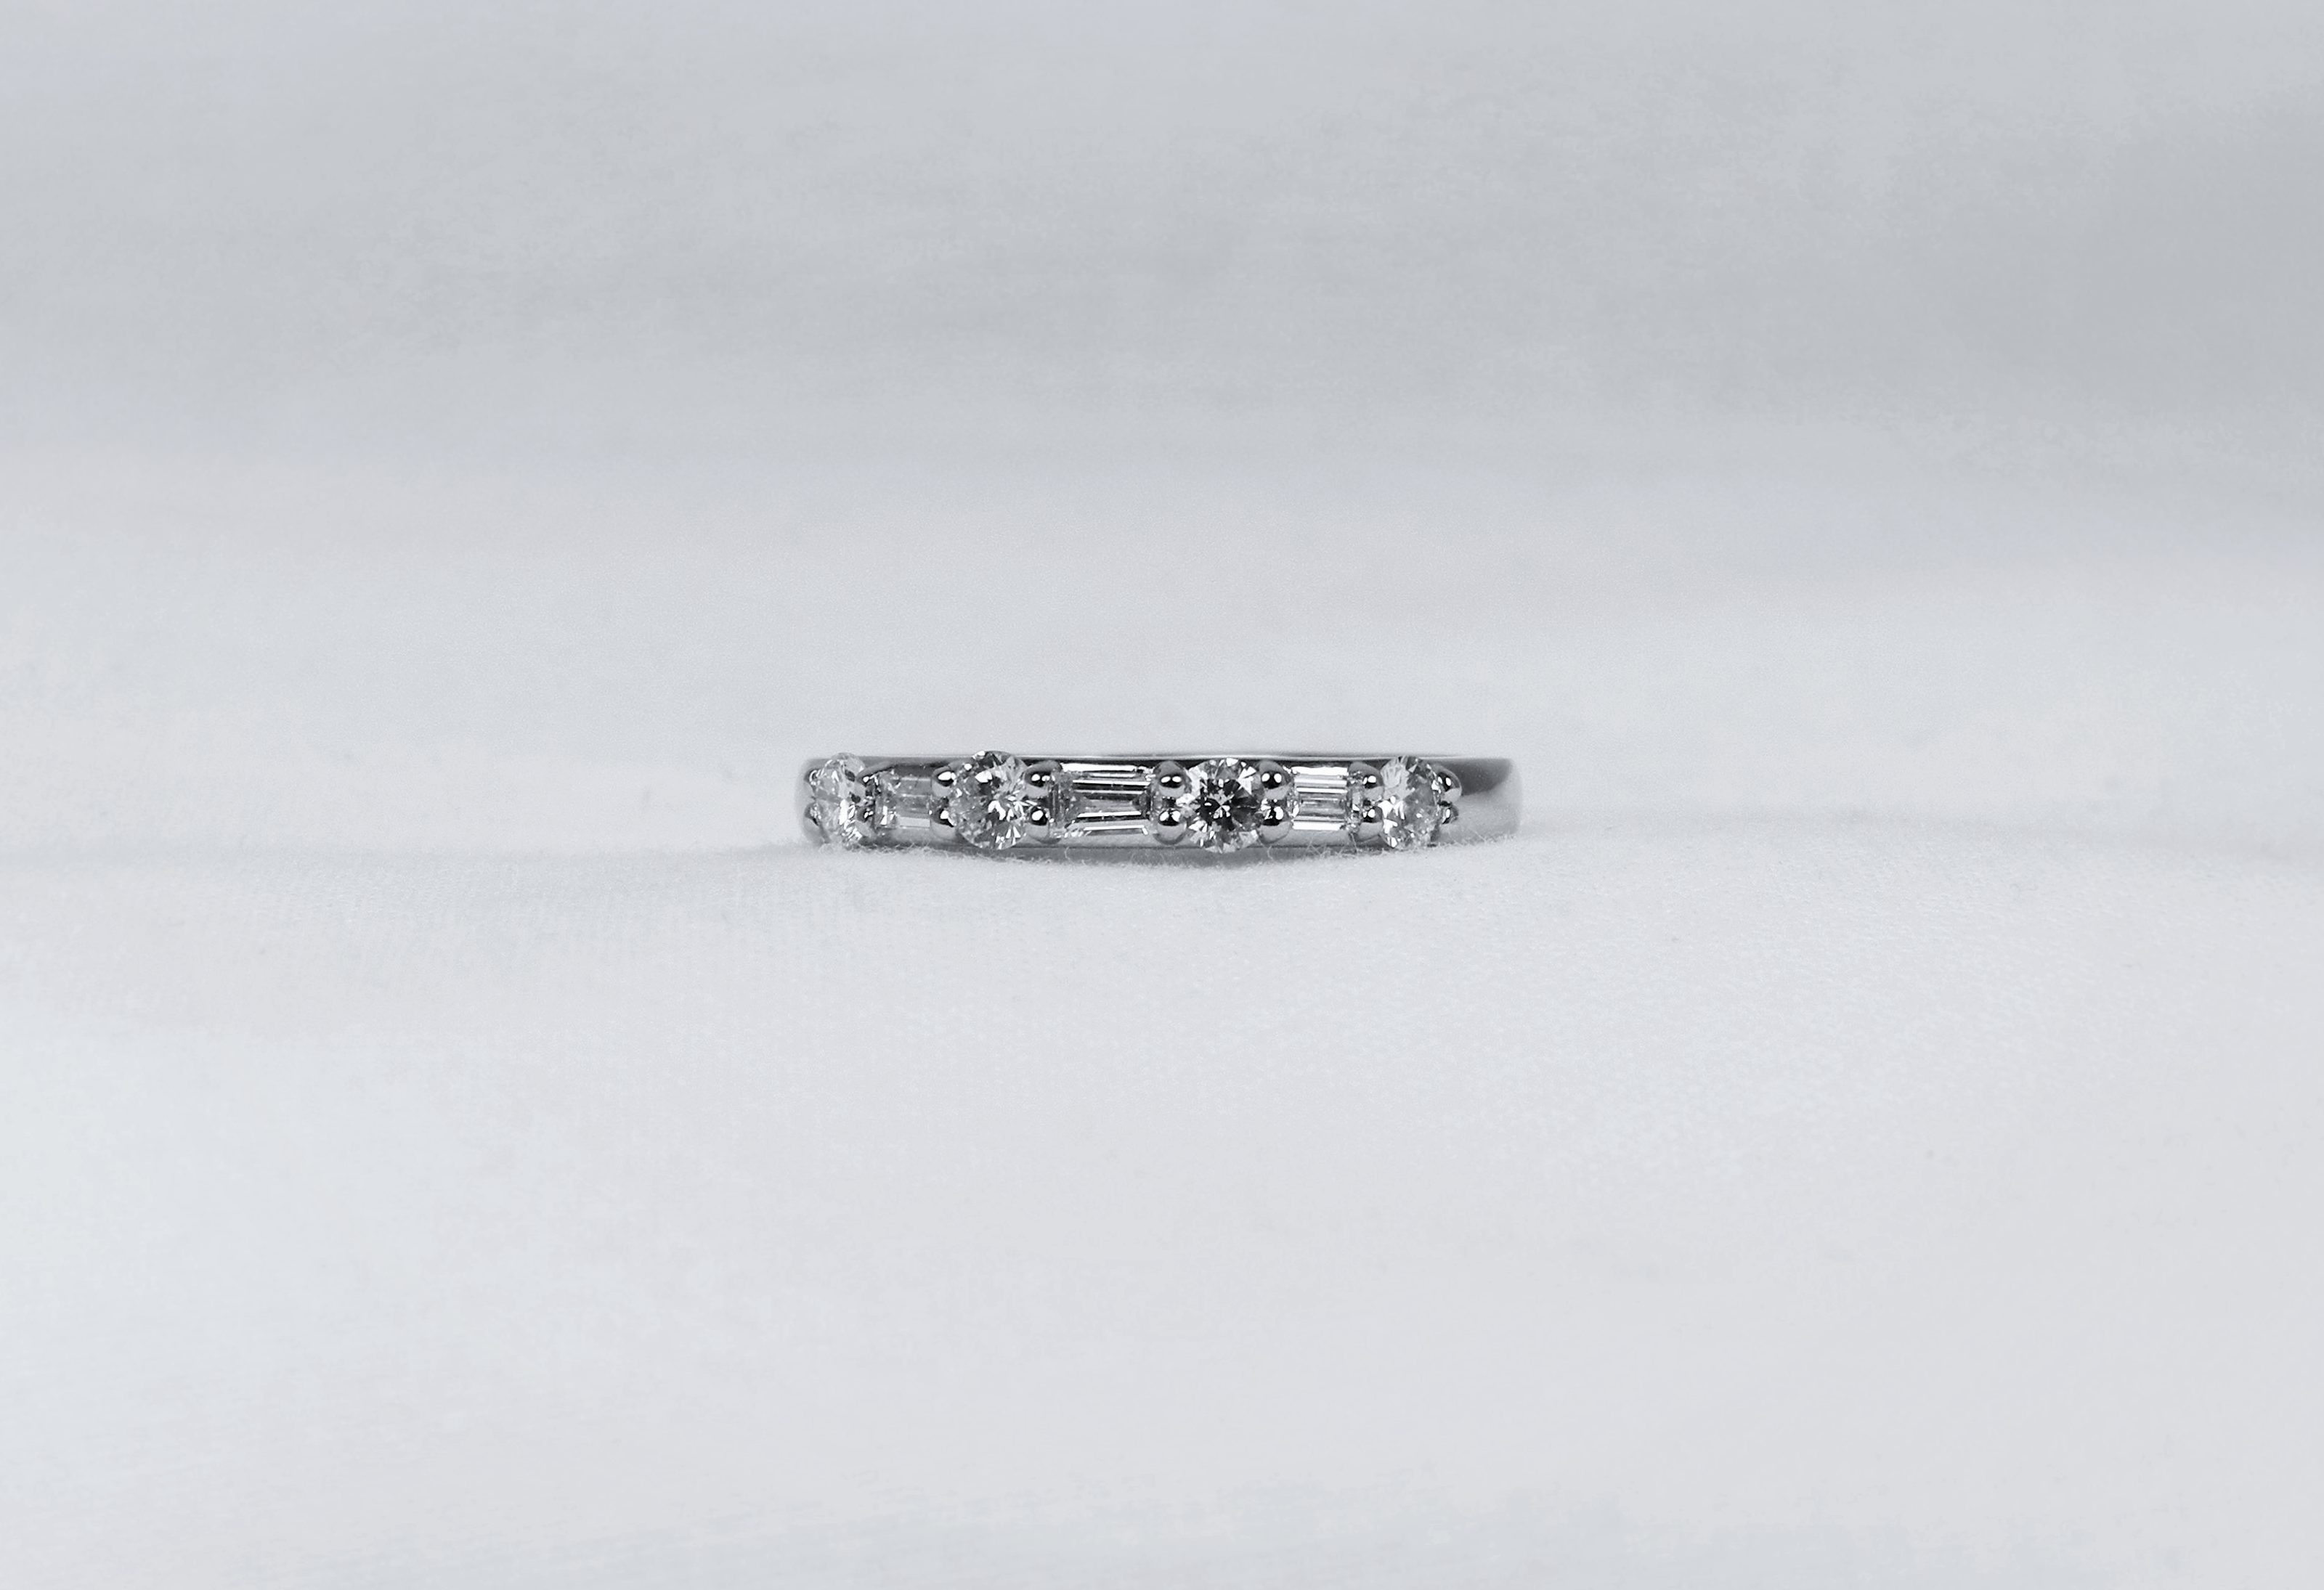 Allure wedding bands